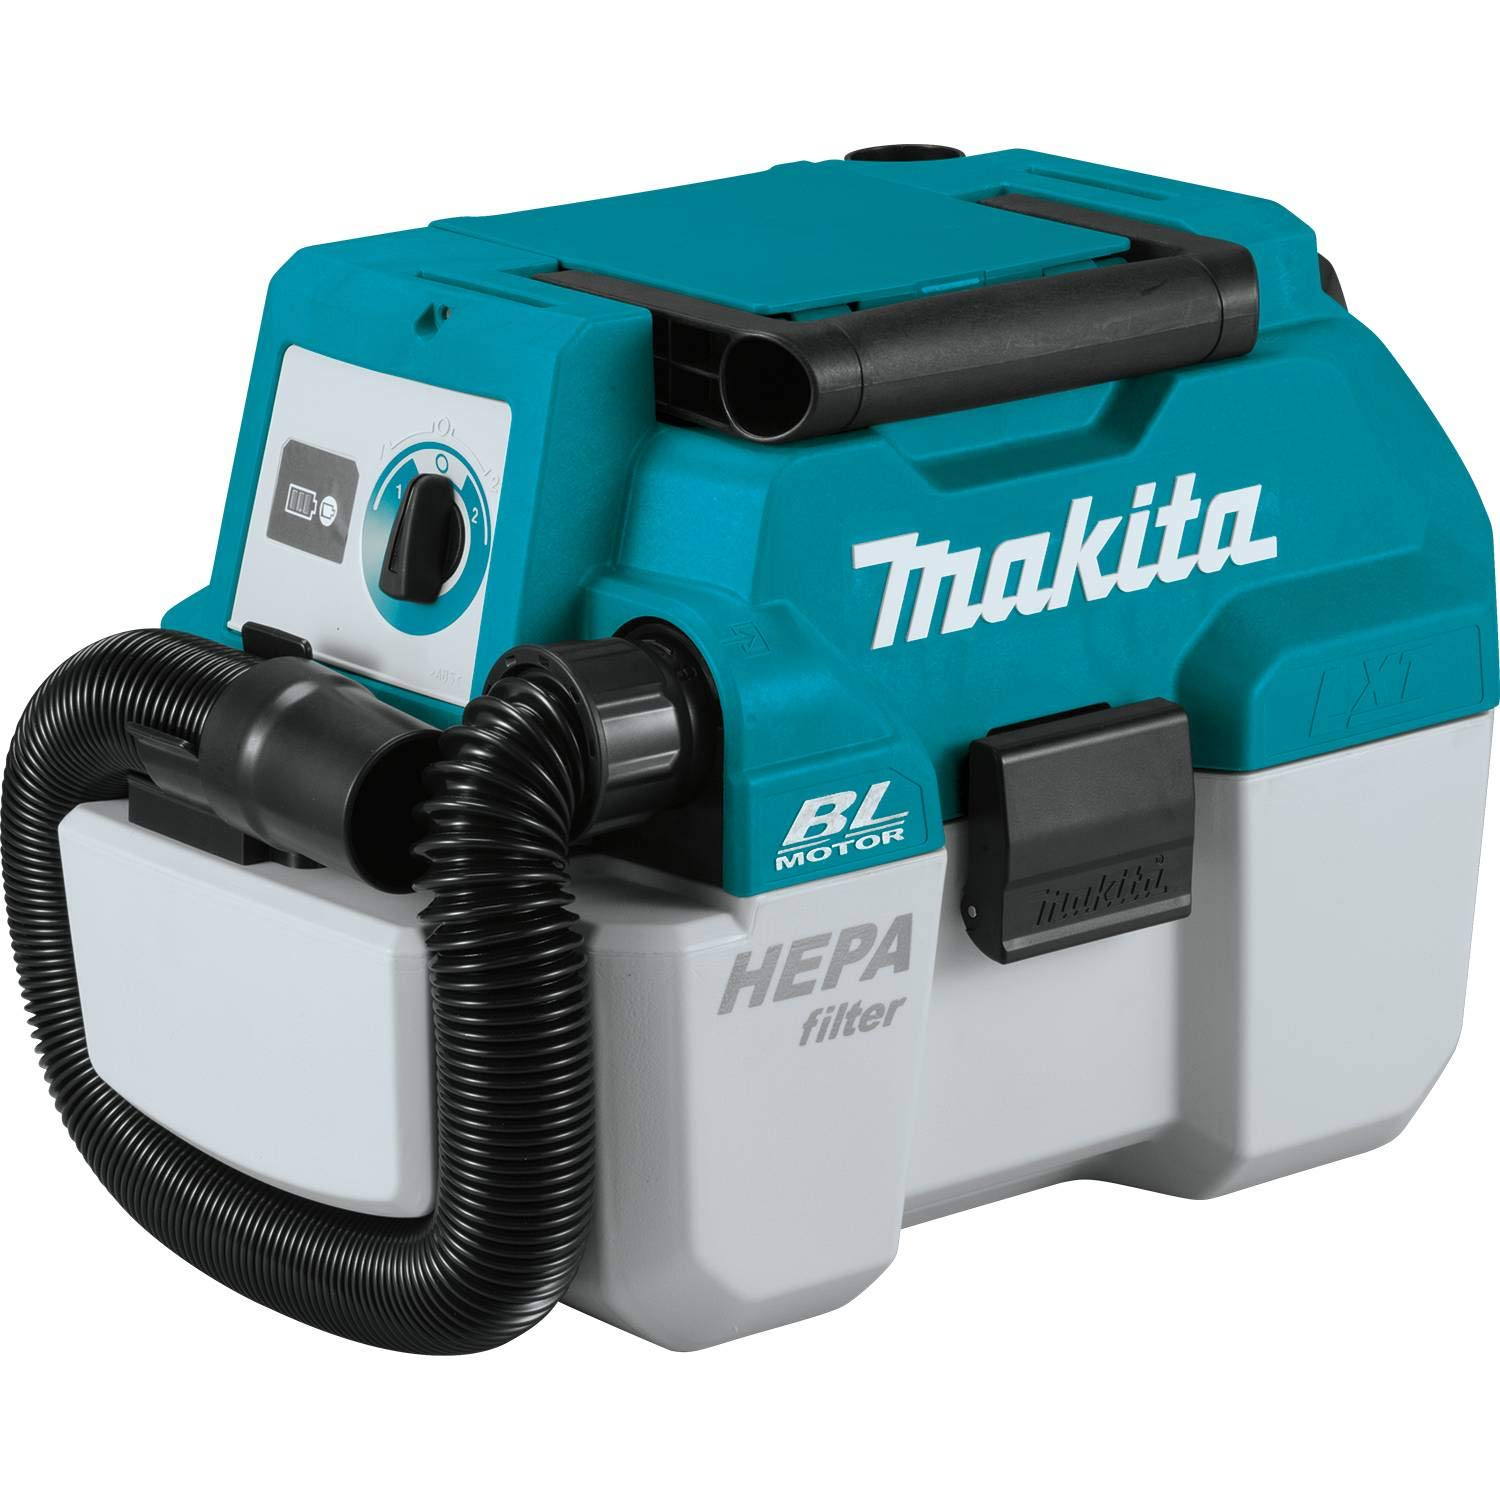 Makita Xcv11Z 18V Lxt Lithium-Ion Brushless Cordless 2 Gallon Hepa Filter Portable Wet/Dry Dust Extractor/Vacuum, Tool Only by Makita